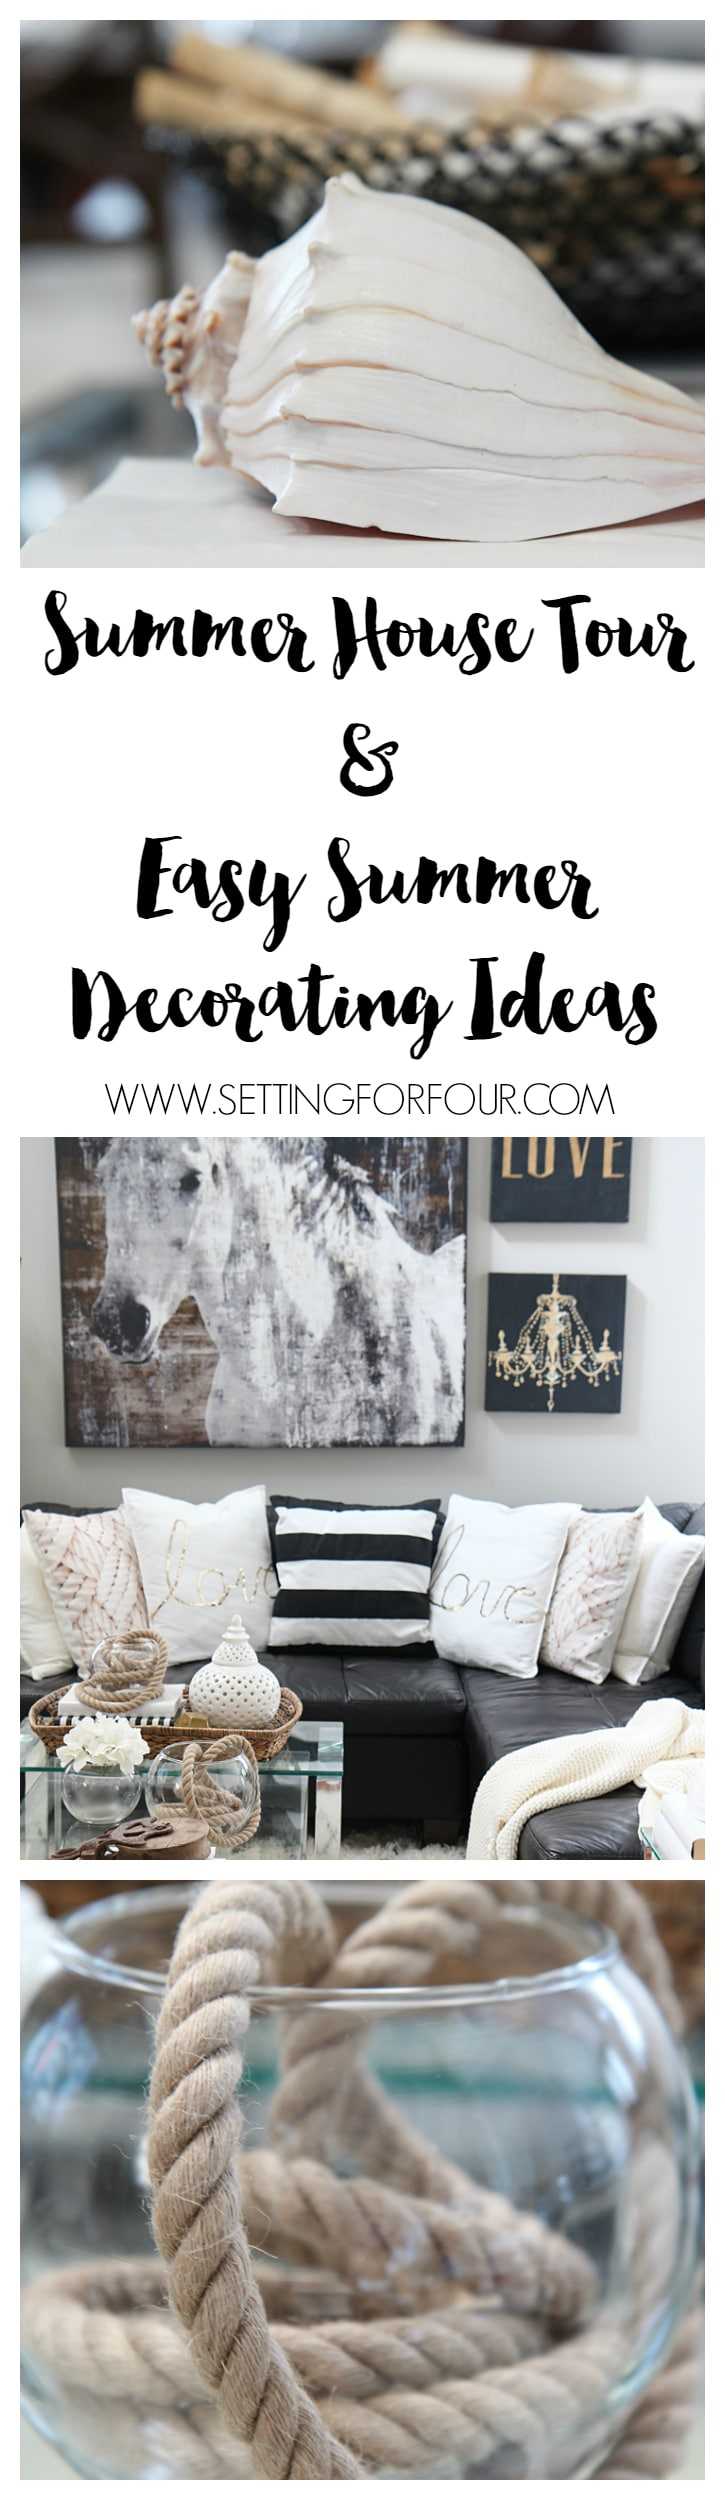 Some see my summer house tour! Tons of summer decorating ideas and tips you can add to your own home! www.settingforfour.com